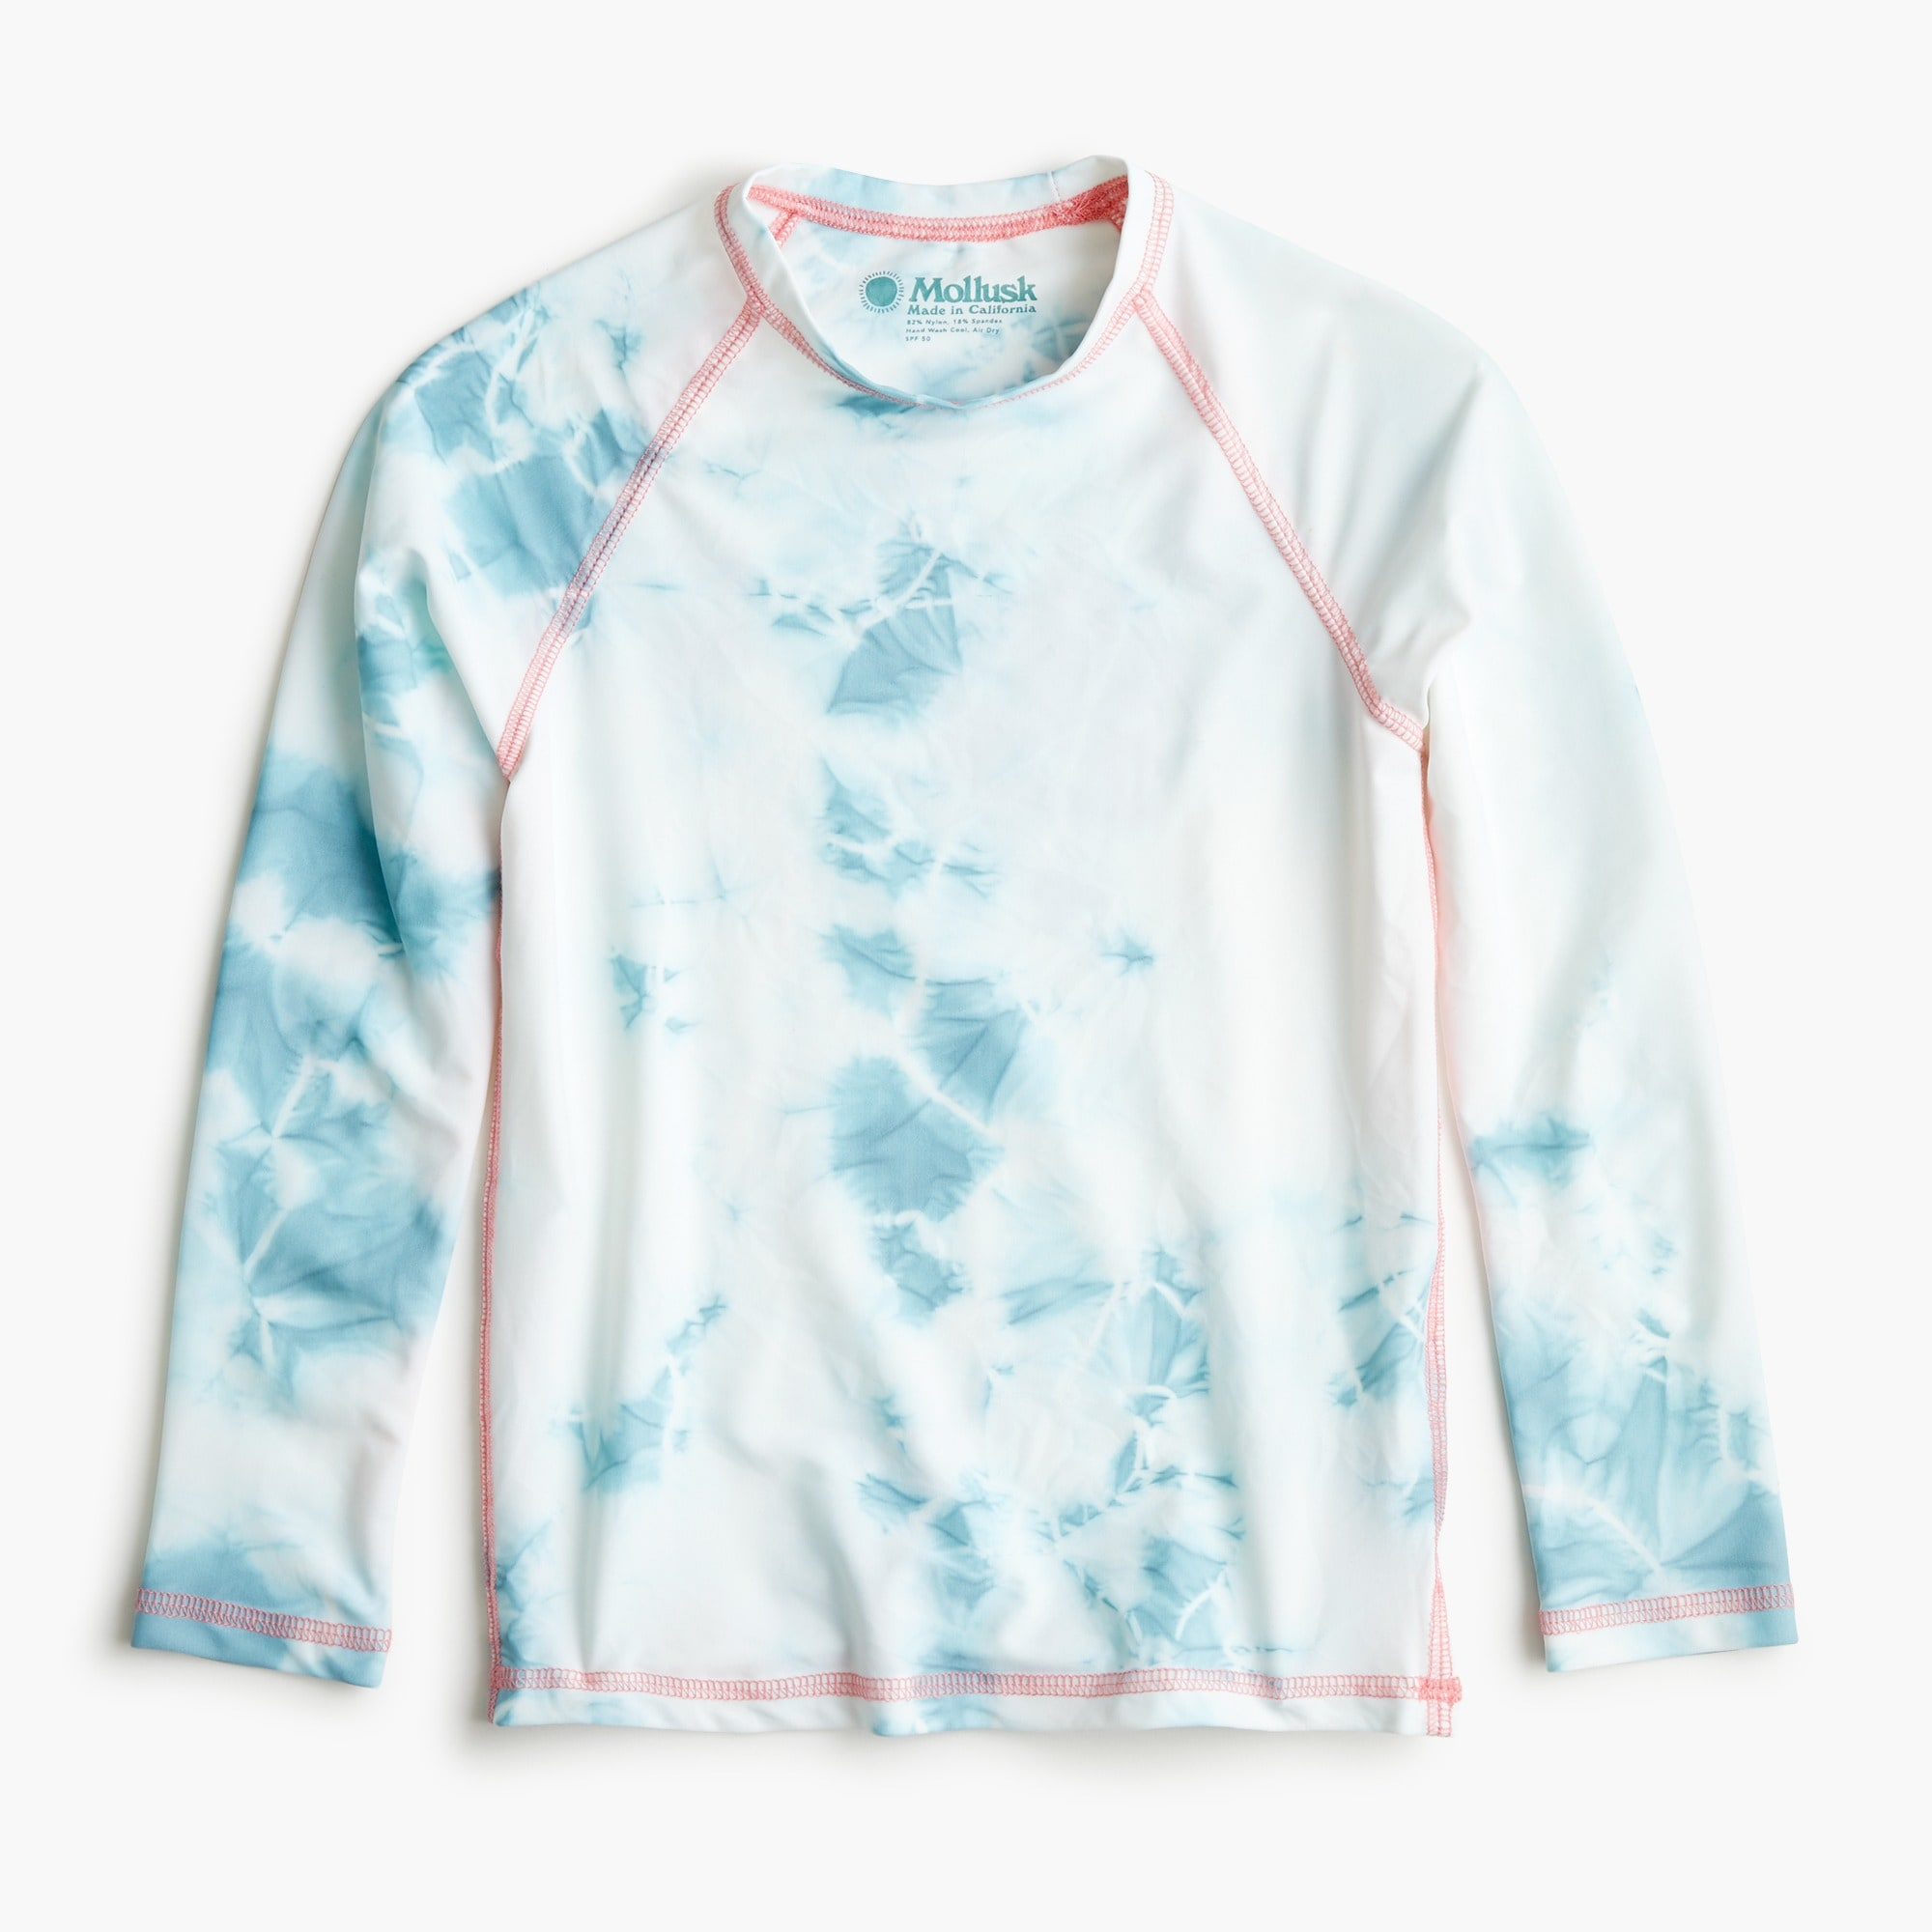 girls Girls' Mollusk tie-dye rash guard